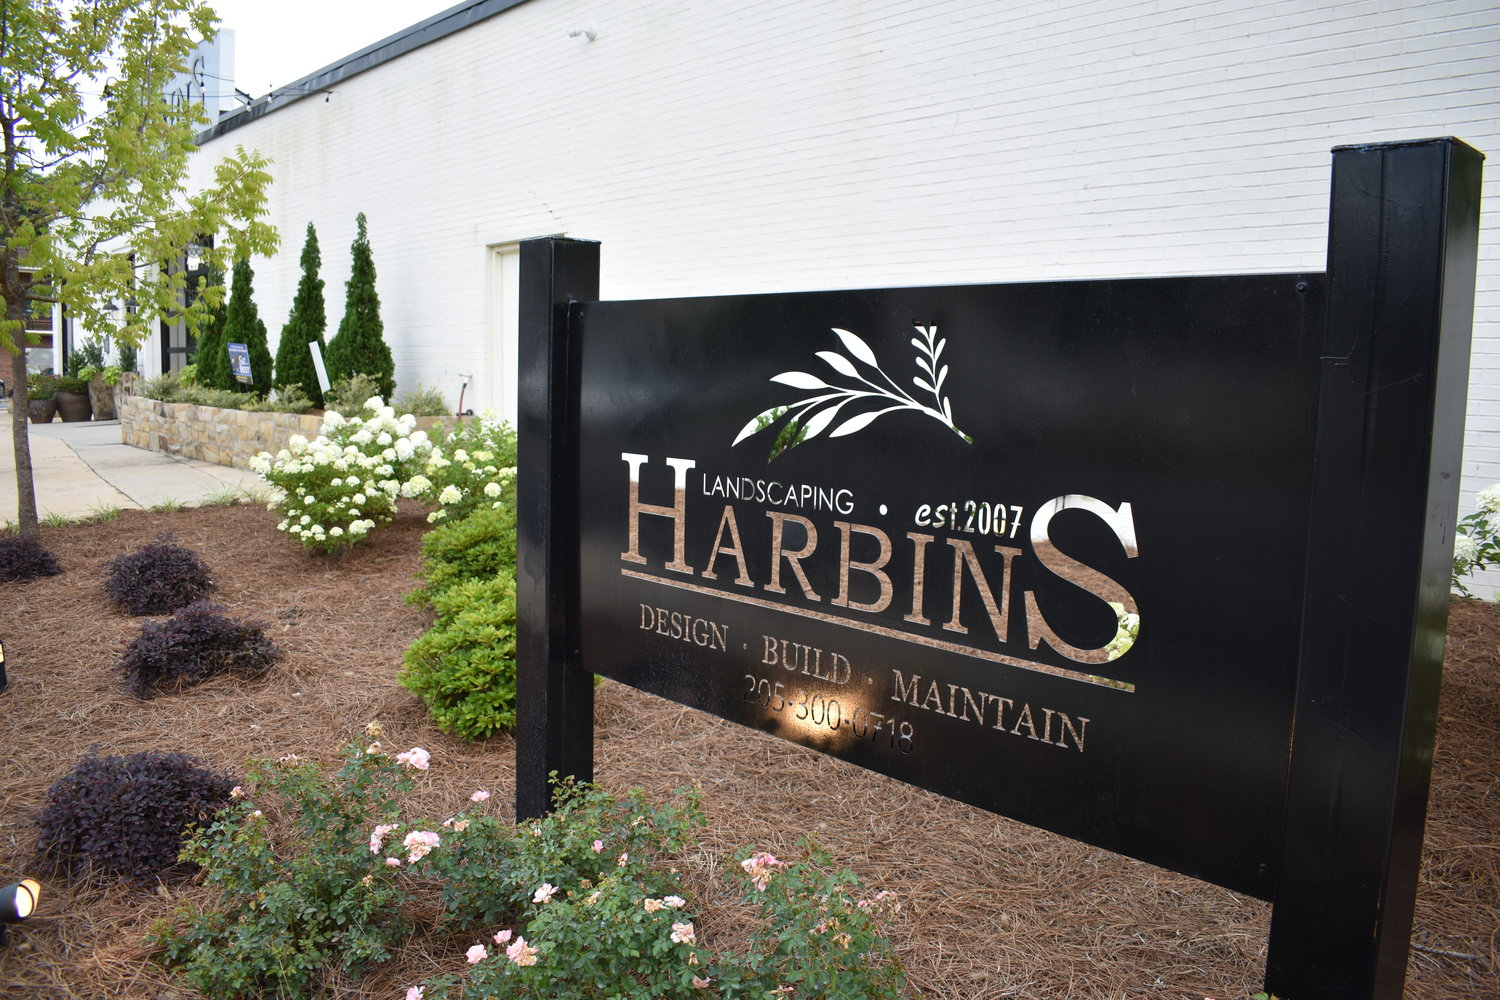 Harbin's Landscaping in Jasper is wanting to tear down the old 1920s house across the intersection to expand, noting the old home is not structurally sound to be used.